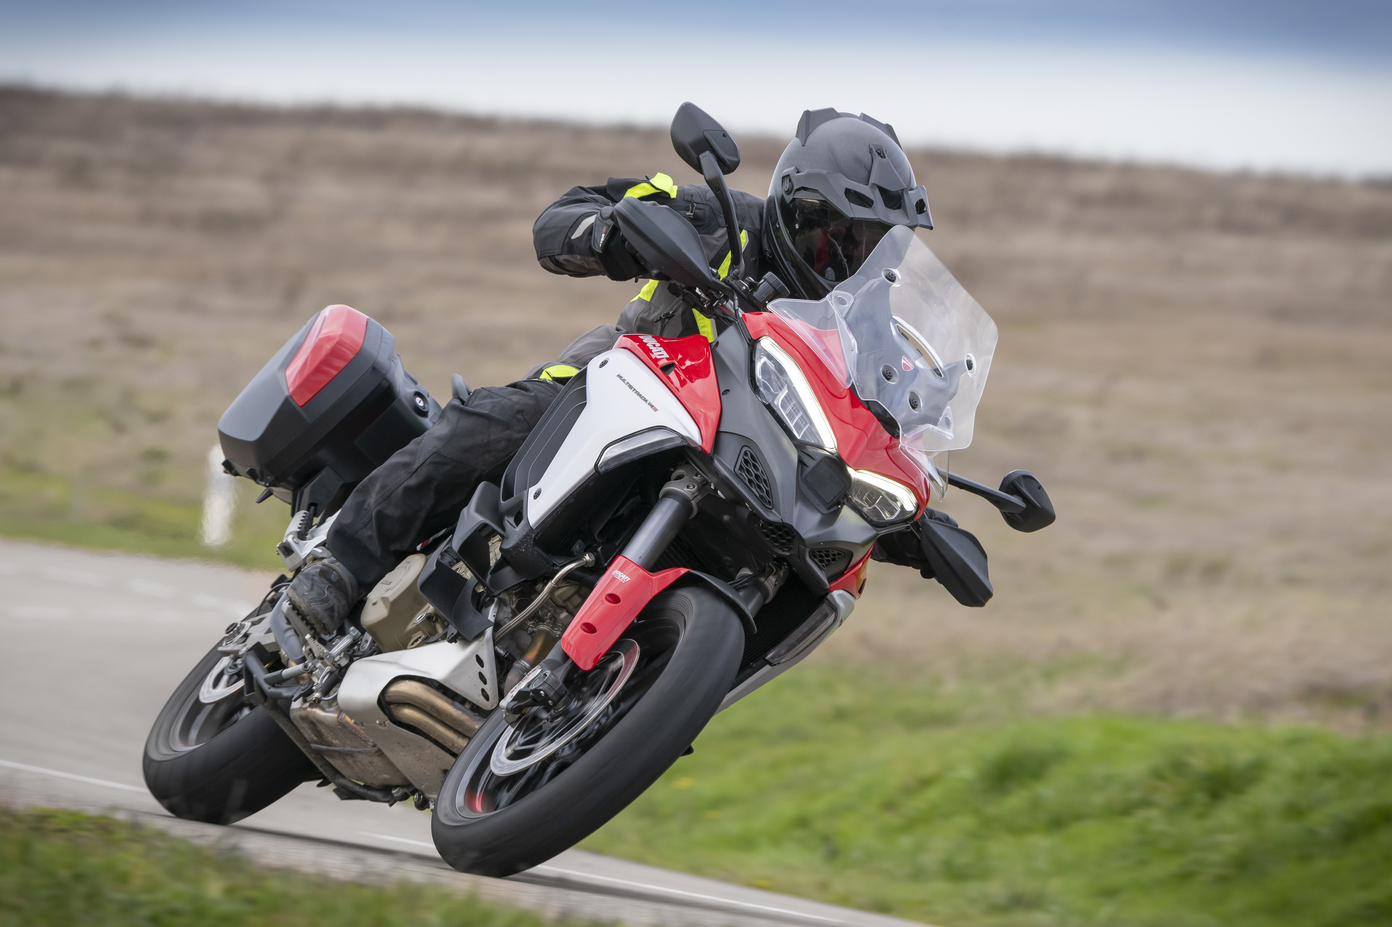 [VIDEO] Essai Ducati Multistrada V4S 2021 : valse sur 4 (...)